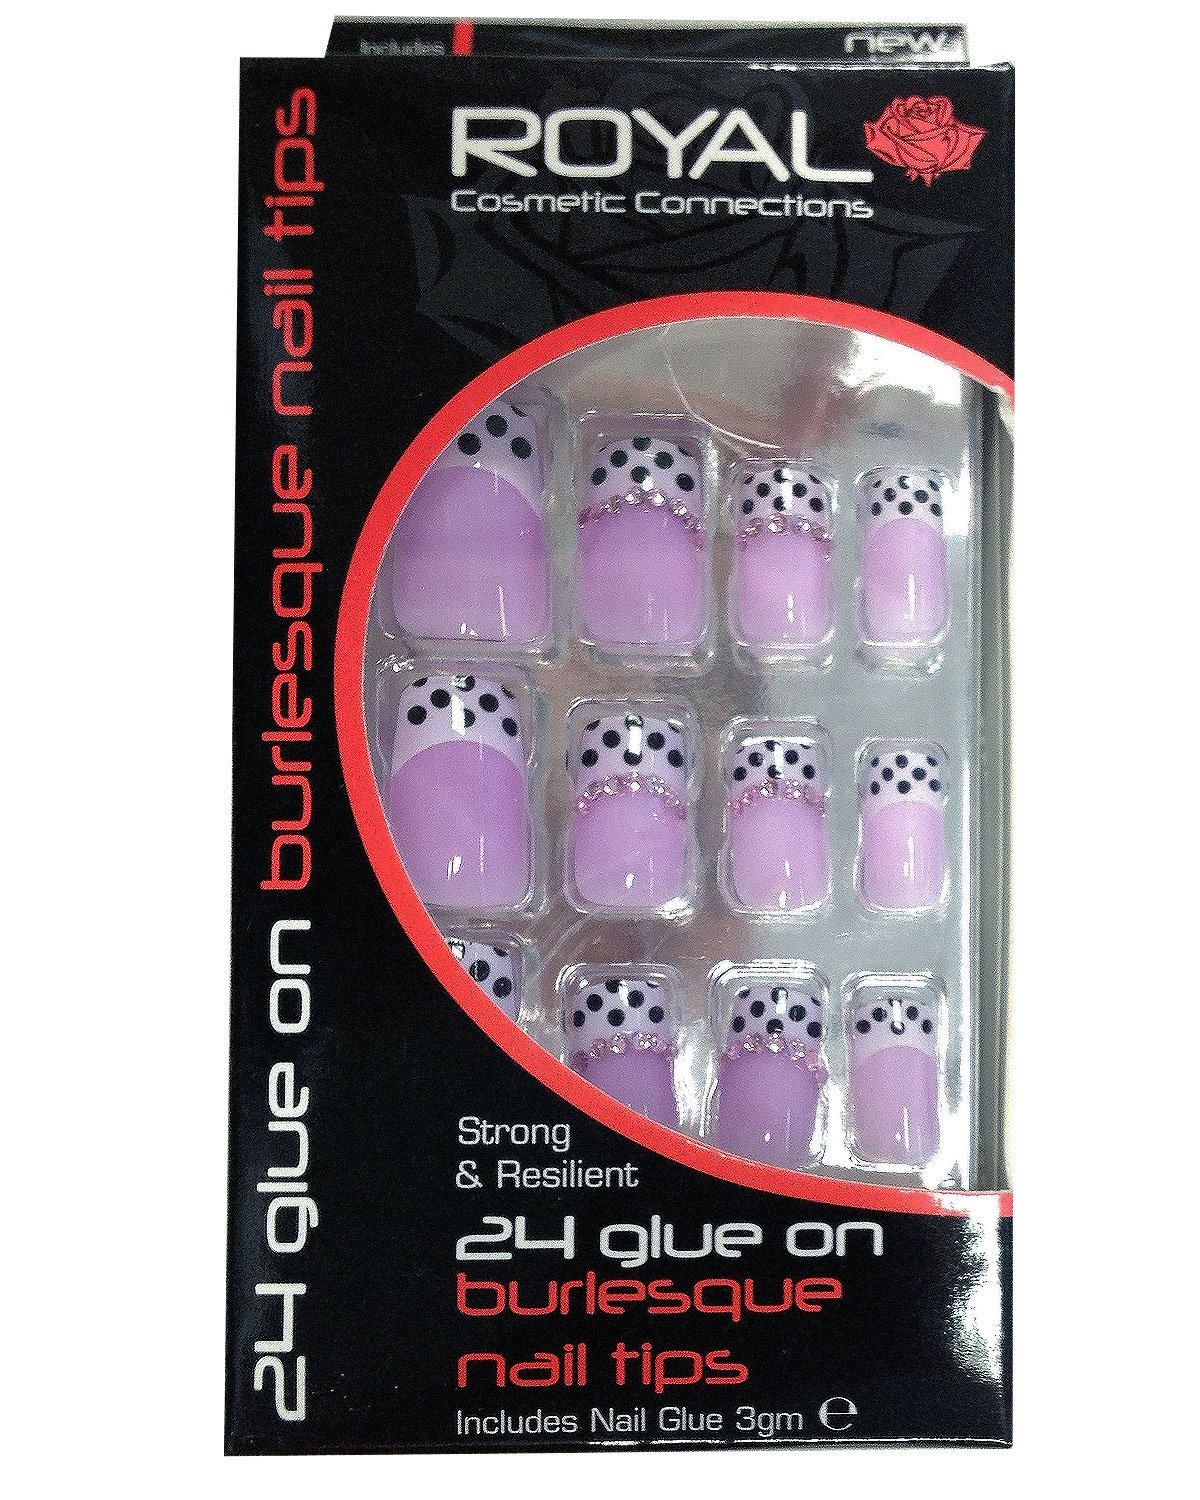 Royal 24 Glue-On Burlesque Nail Tips - Black With White Spots & Gem Detail